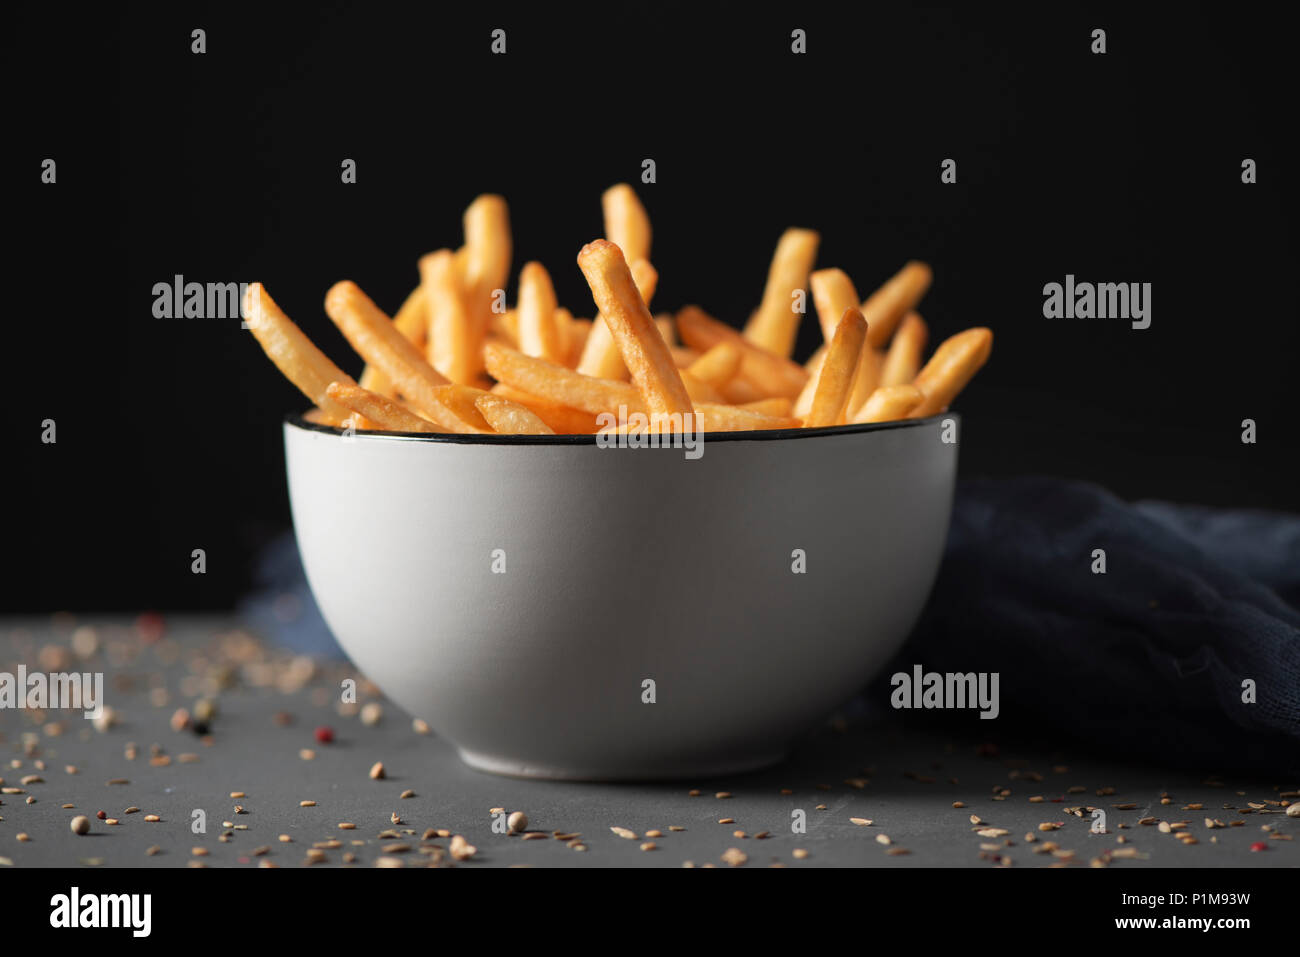 some appetizing french fries served in a white ceramic bowl, placed on a gray rustic wooden table, against a black background - Stock Image